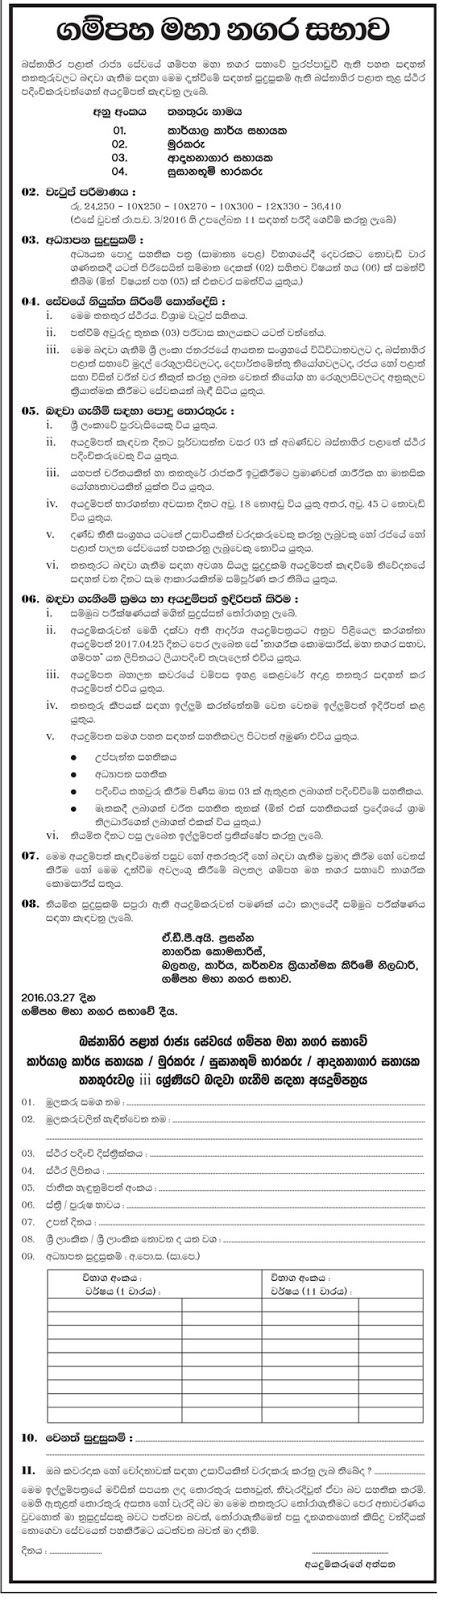 Sri Lankan Government Job Vacancies at Gampaha Municipal Council for Office Assistant, Watcher, Crematorium Assistant, Cemetery Keeper